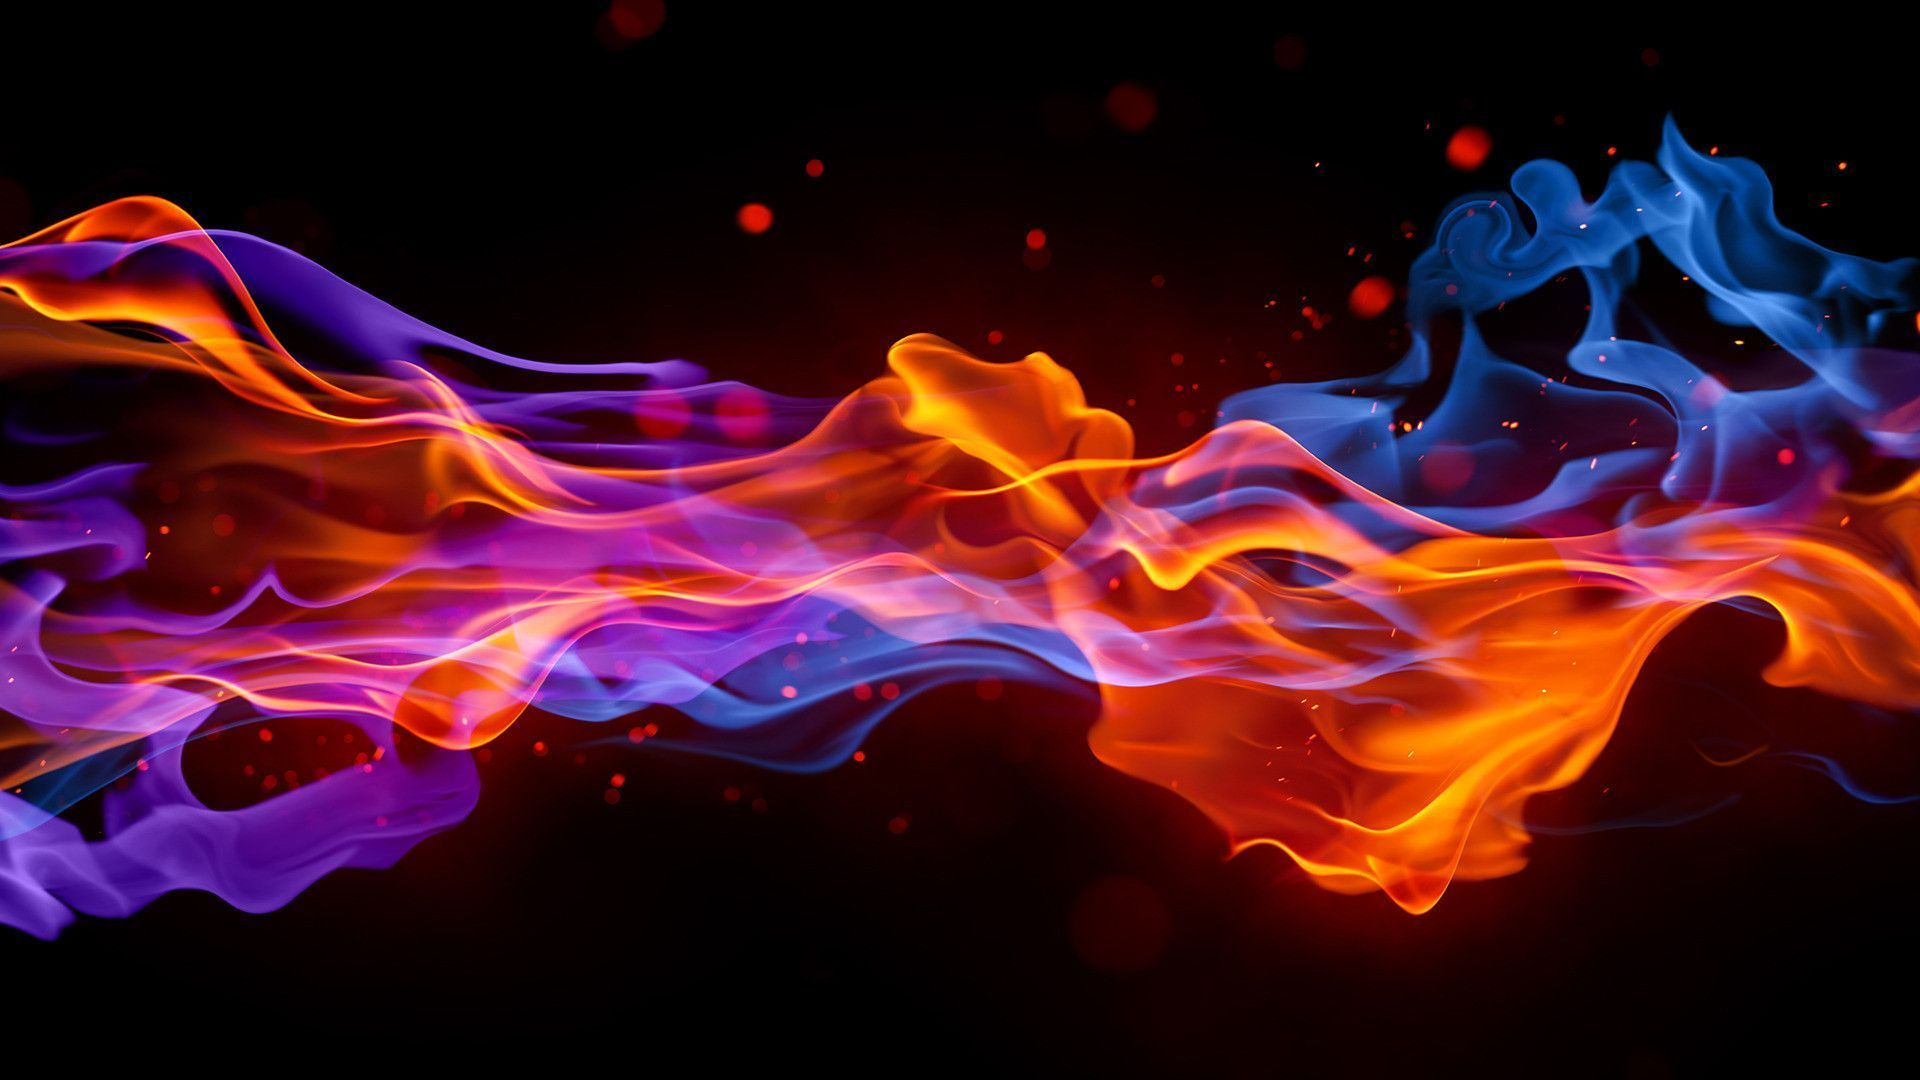 Fire Wallpapers Hd Wallpaper In 2019 Smoke Background